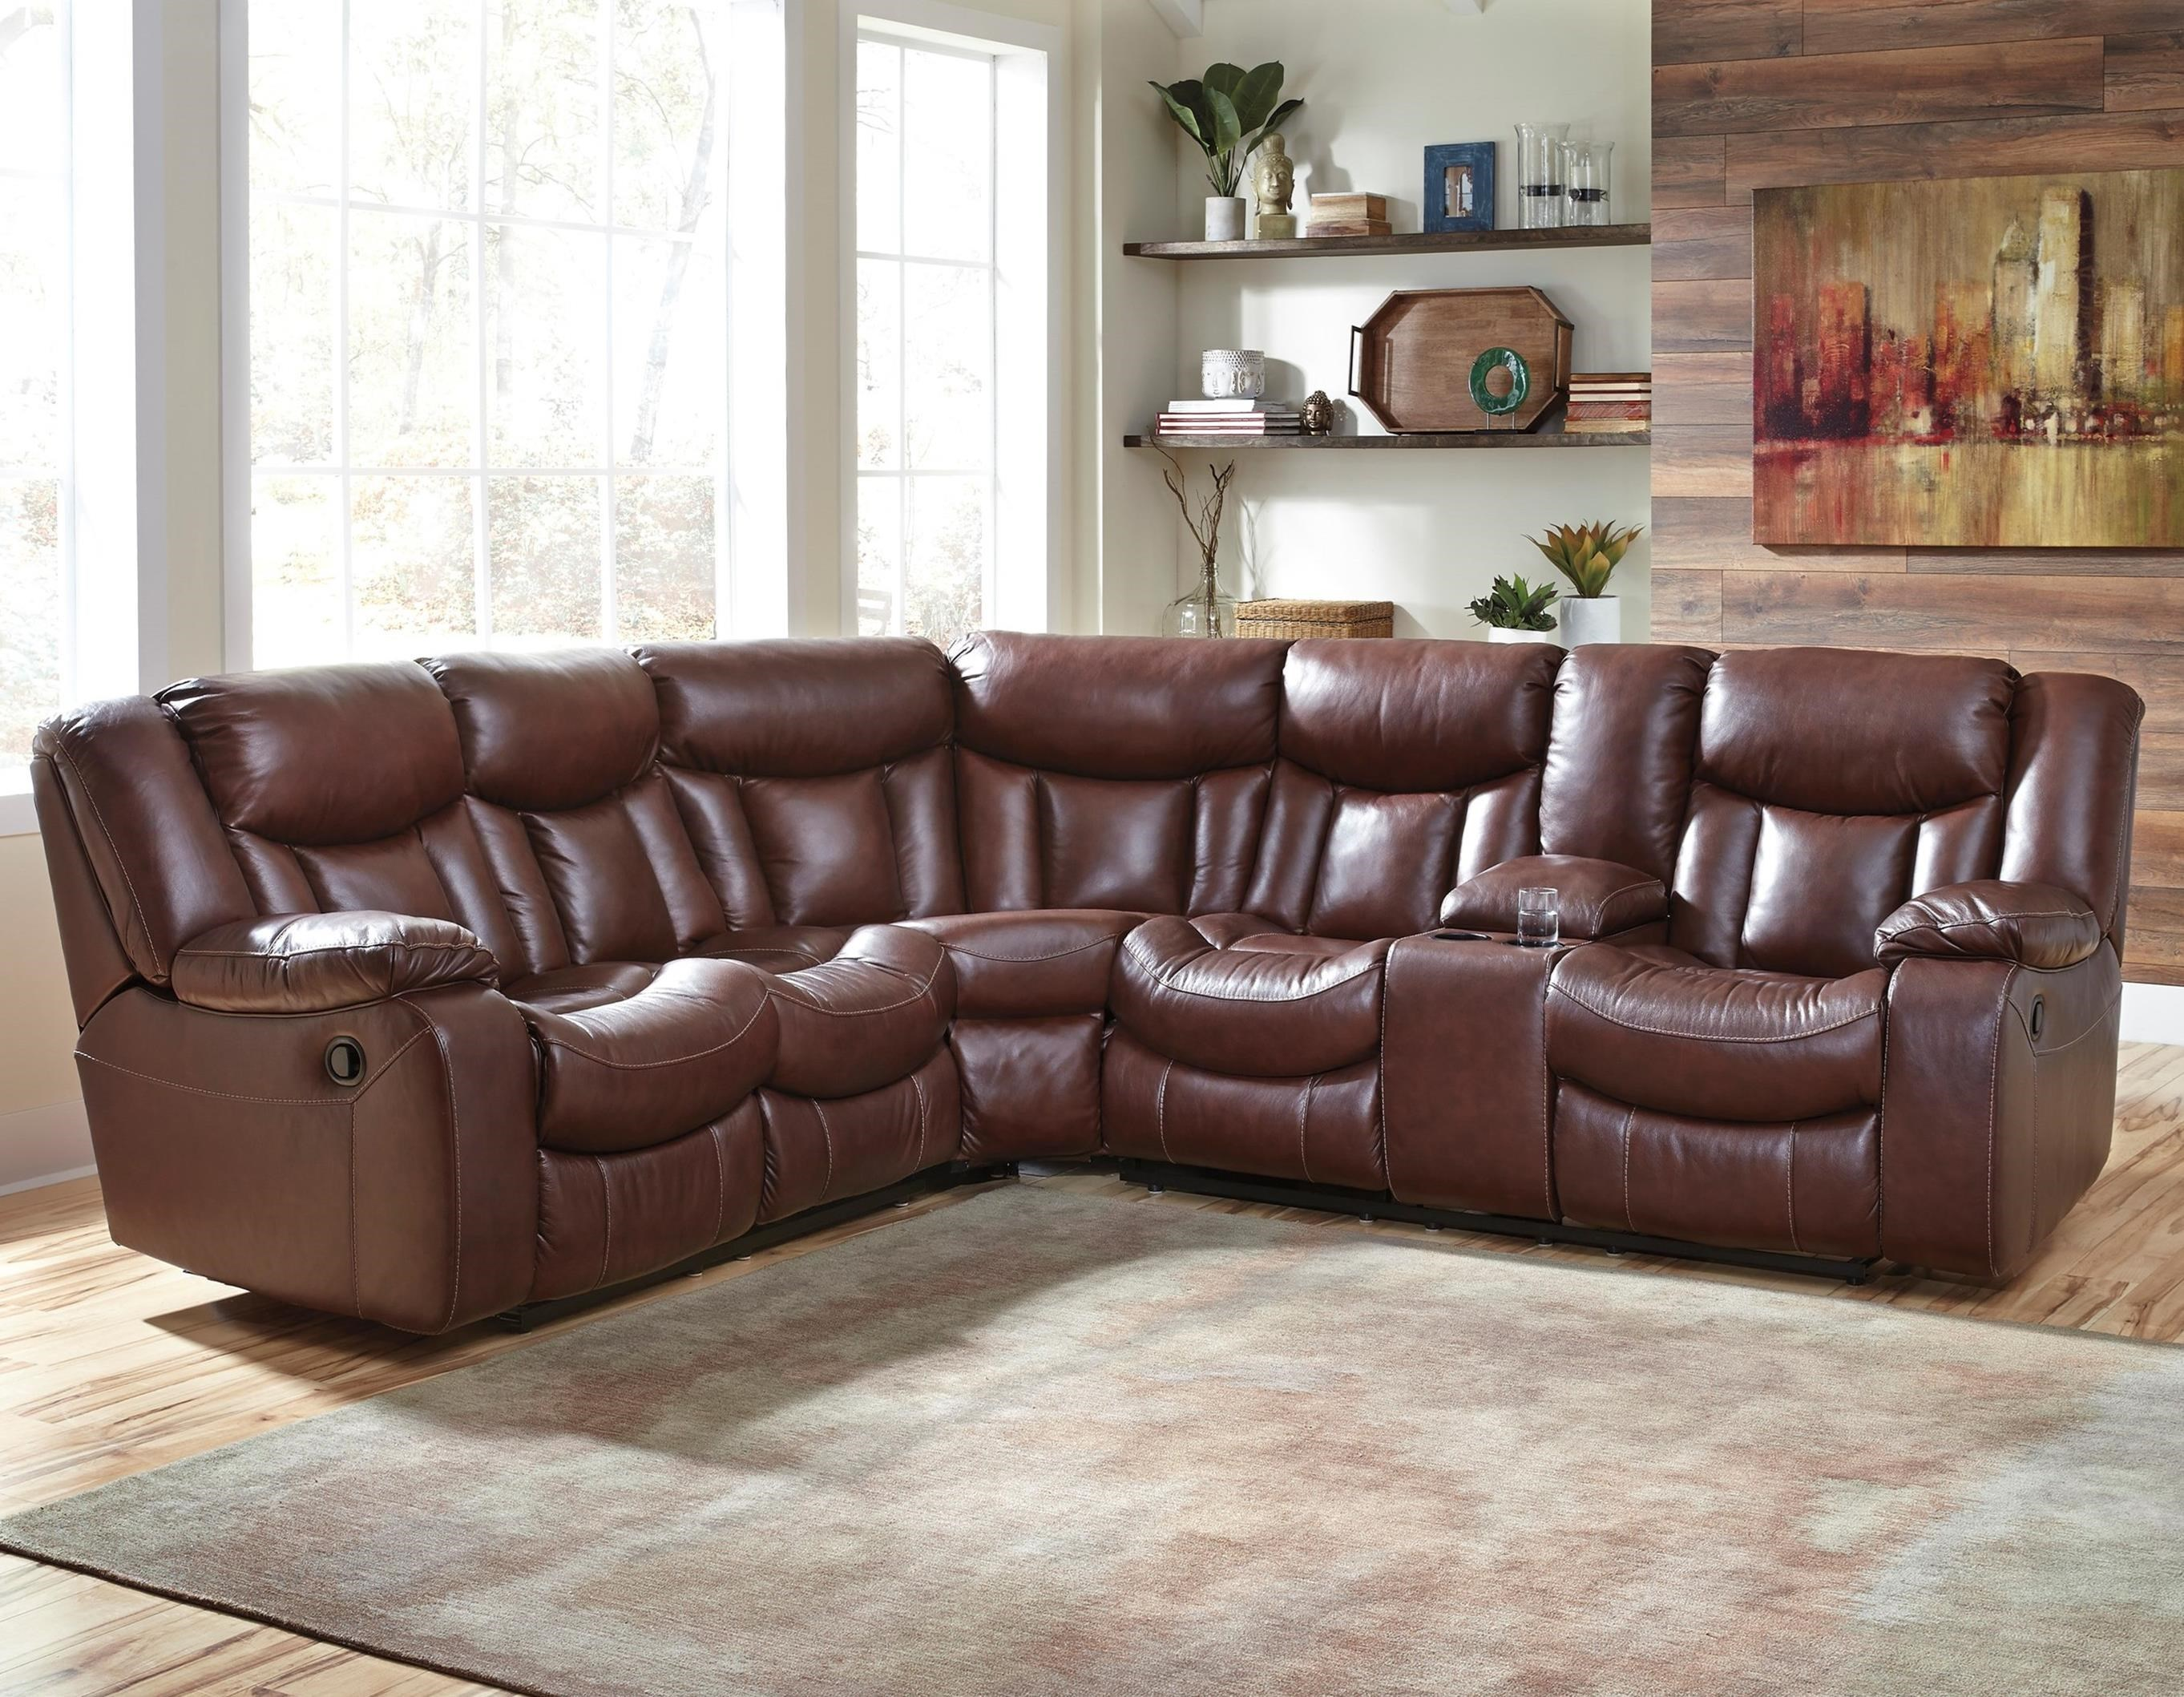 Benchcraft Amaroo Brown Leather Match 2-Piece Reclining Sectional  sc 1 st  Wayside Furniture & Benchcraft Amaroo Brown Leather Match 2-Piece Reclining Sectional ... islam-shia.org